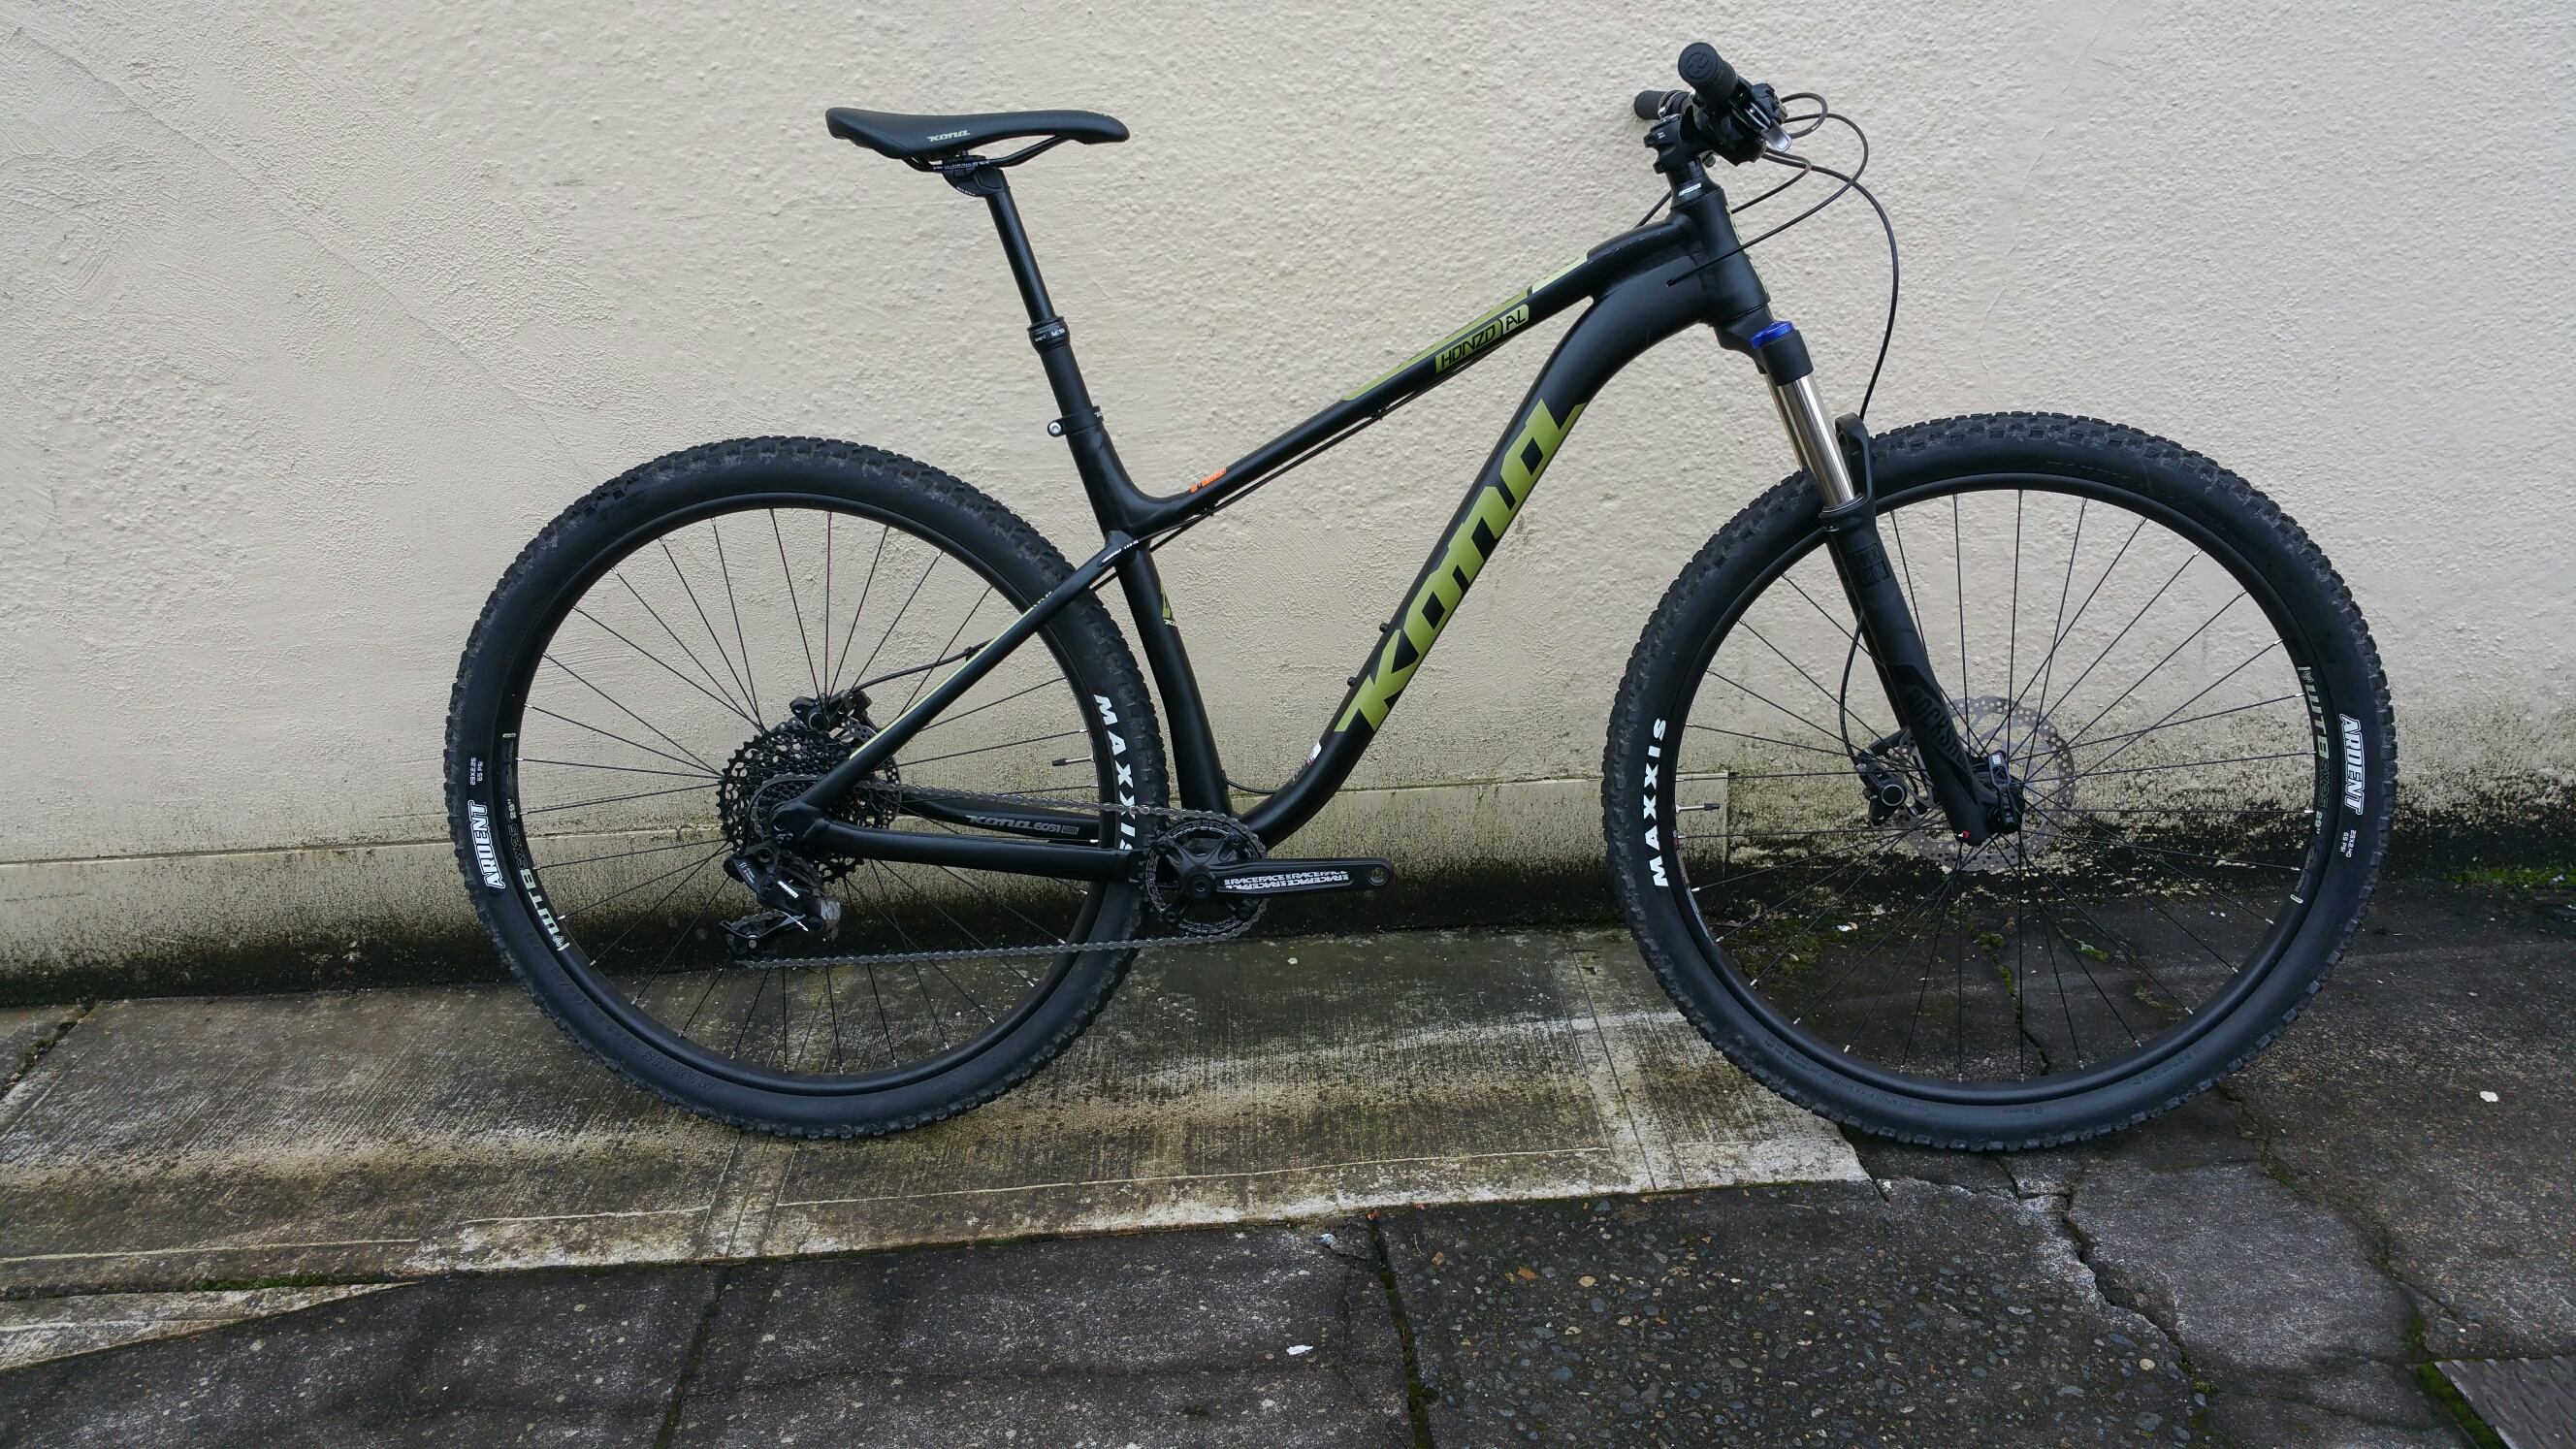 1 Kona Honzo 29 Er Size Large The Only New Bike Stolen Completely Stock Had No Pedals Installed